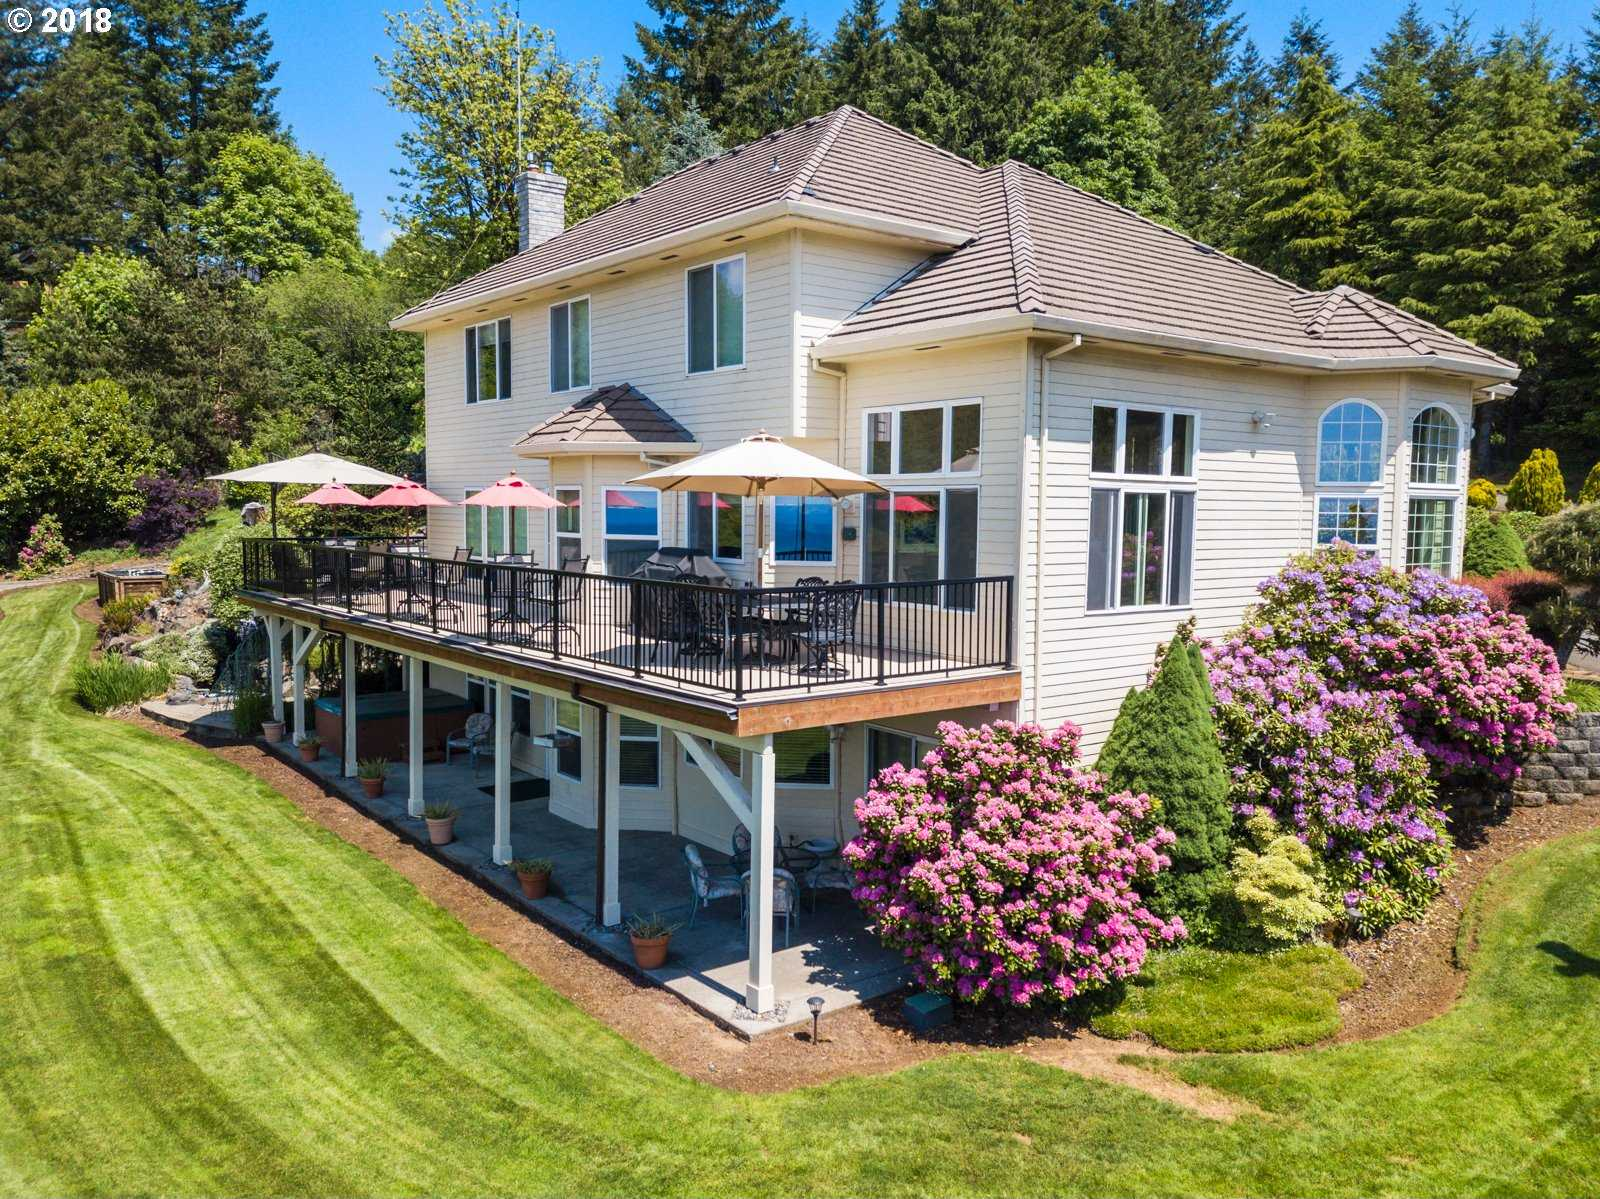 $1,395,000 - 4Br/4Ba -  for Sale in Yamhill Valley Estates, Newberg